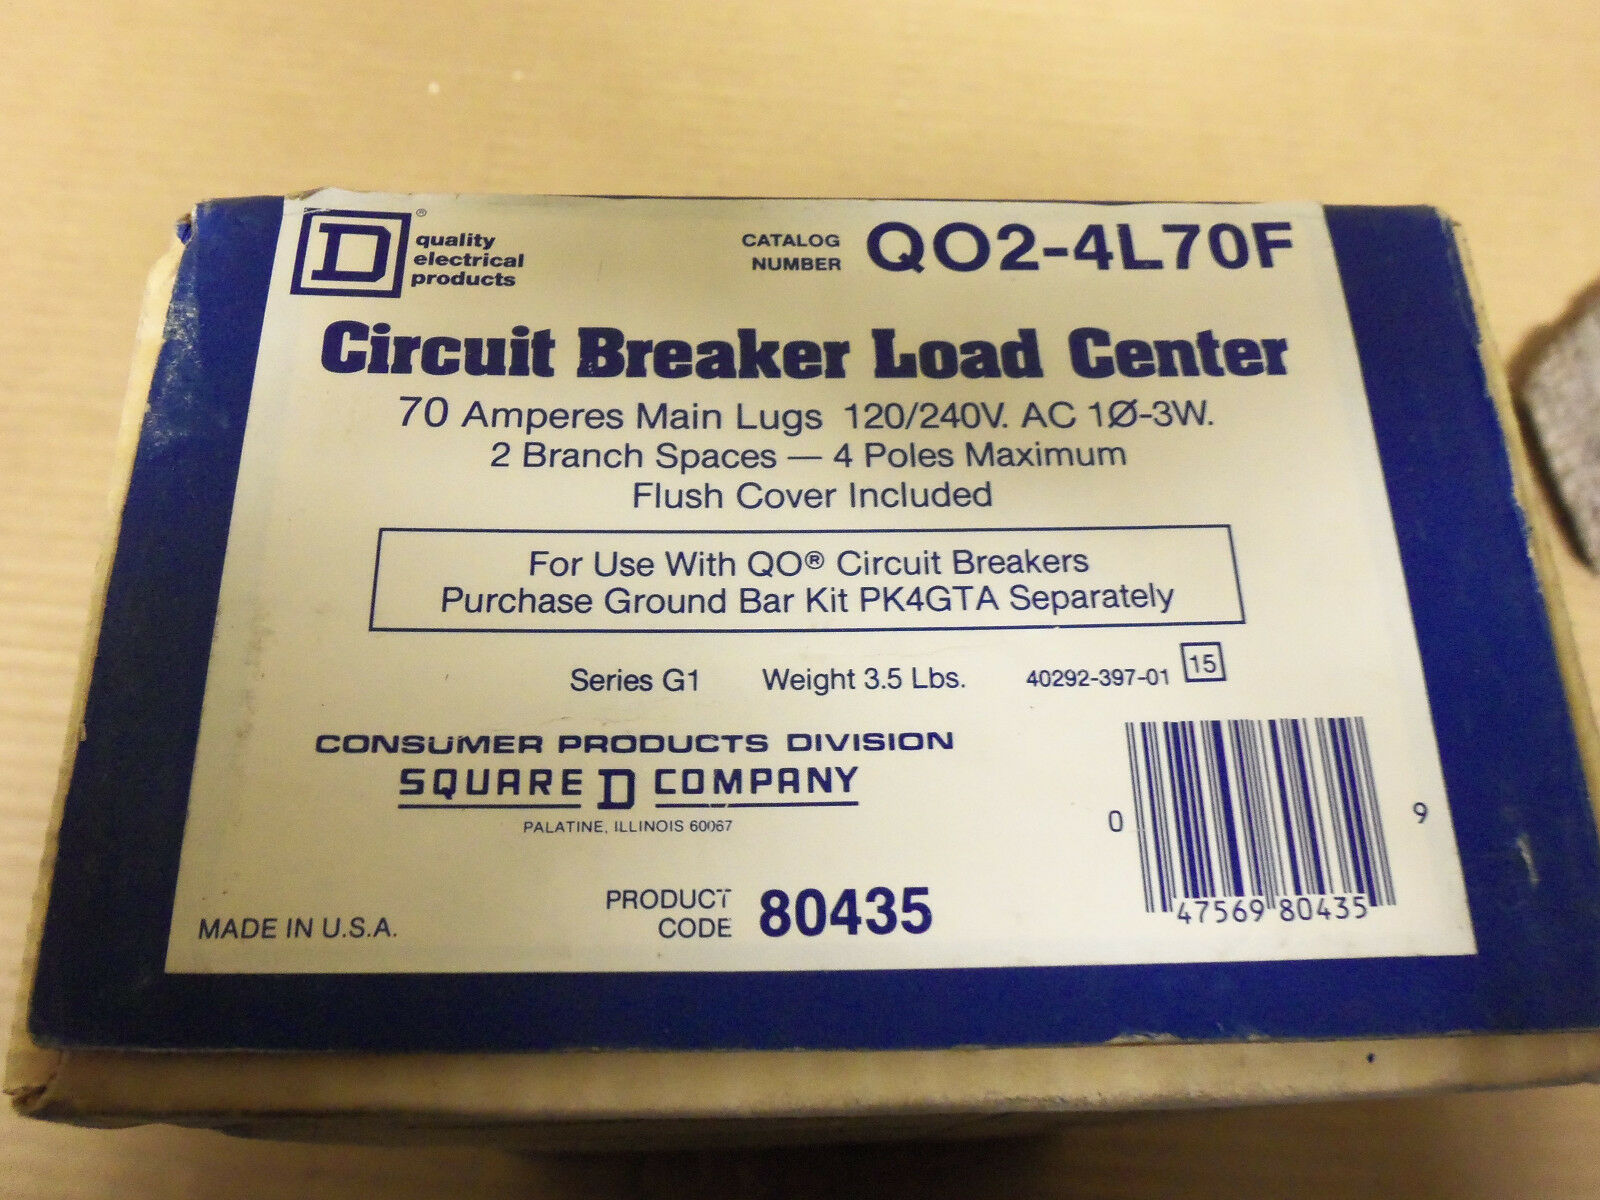 New Square D Circuit Breaker Load Center Q02 4l70f 70 Amp 120v 240v Homeline Wiring Diagram 70a 1 Of 3only Available